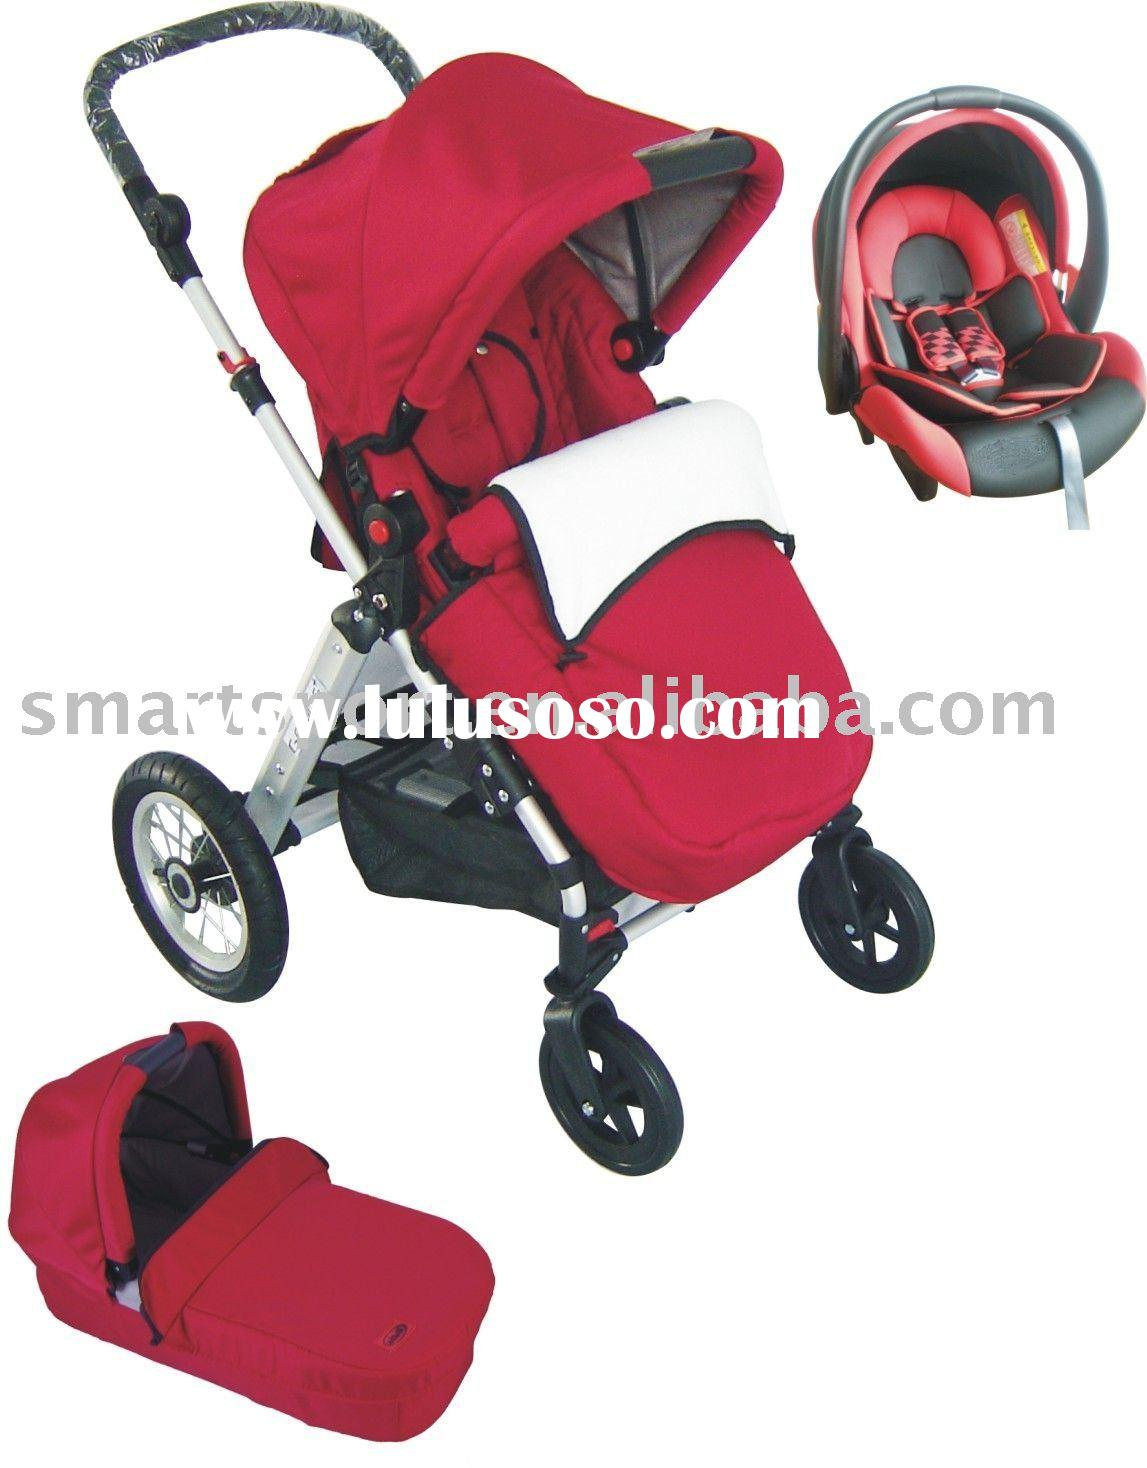 travel system stroller baby stroller with infant car seat EN1888 AS/NZS 2088